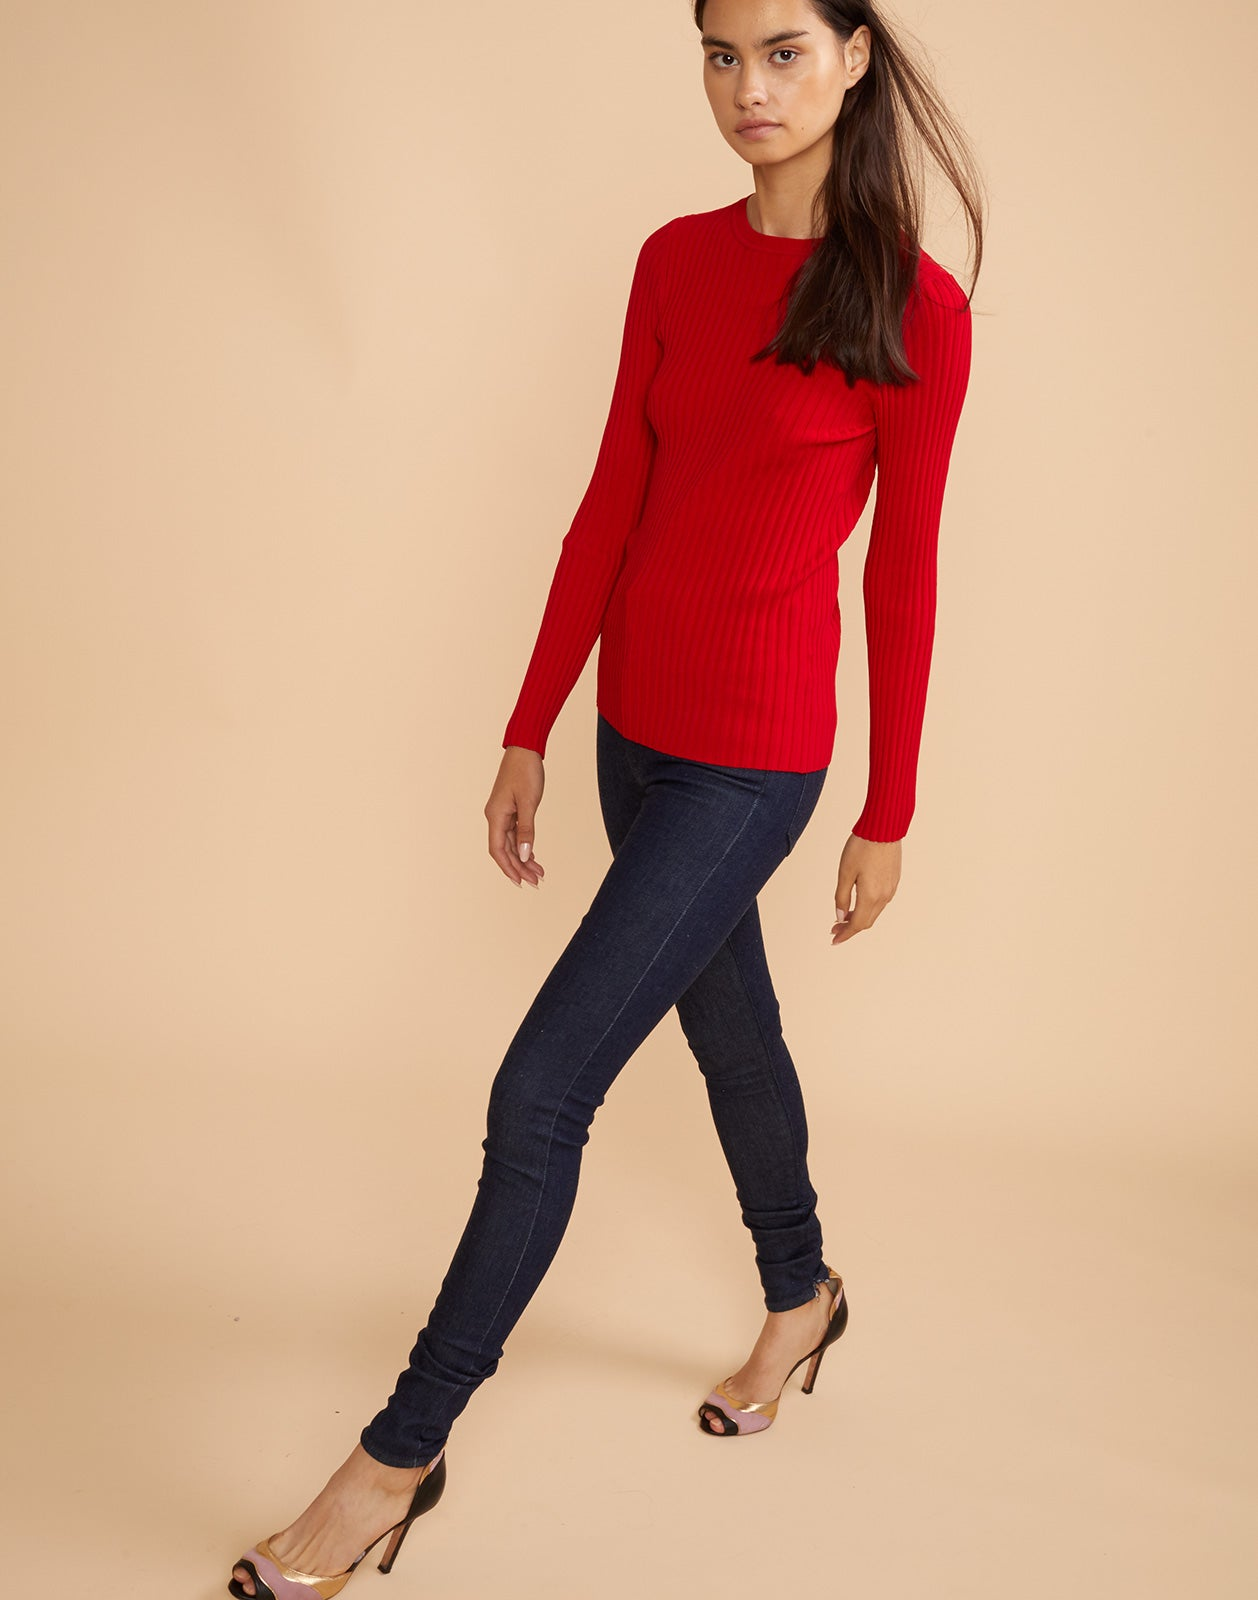 Front view of model walking in Haven ribbed sweater in red.